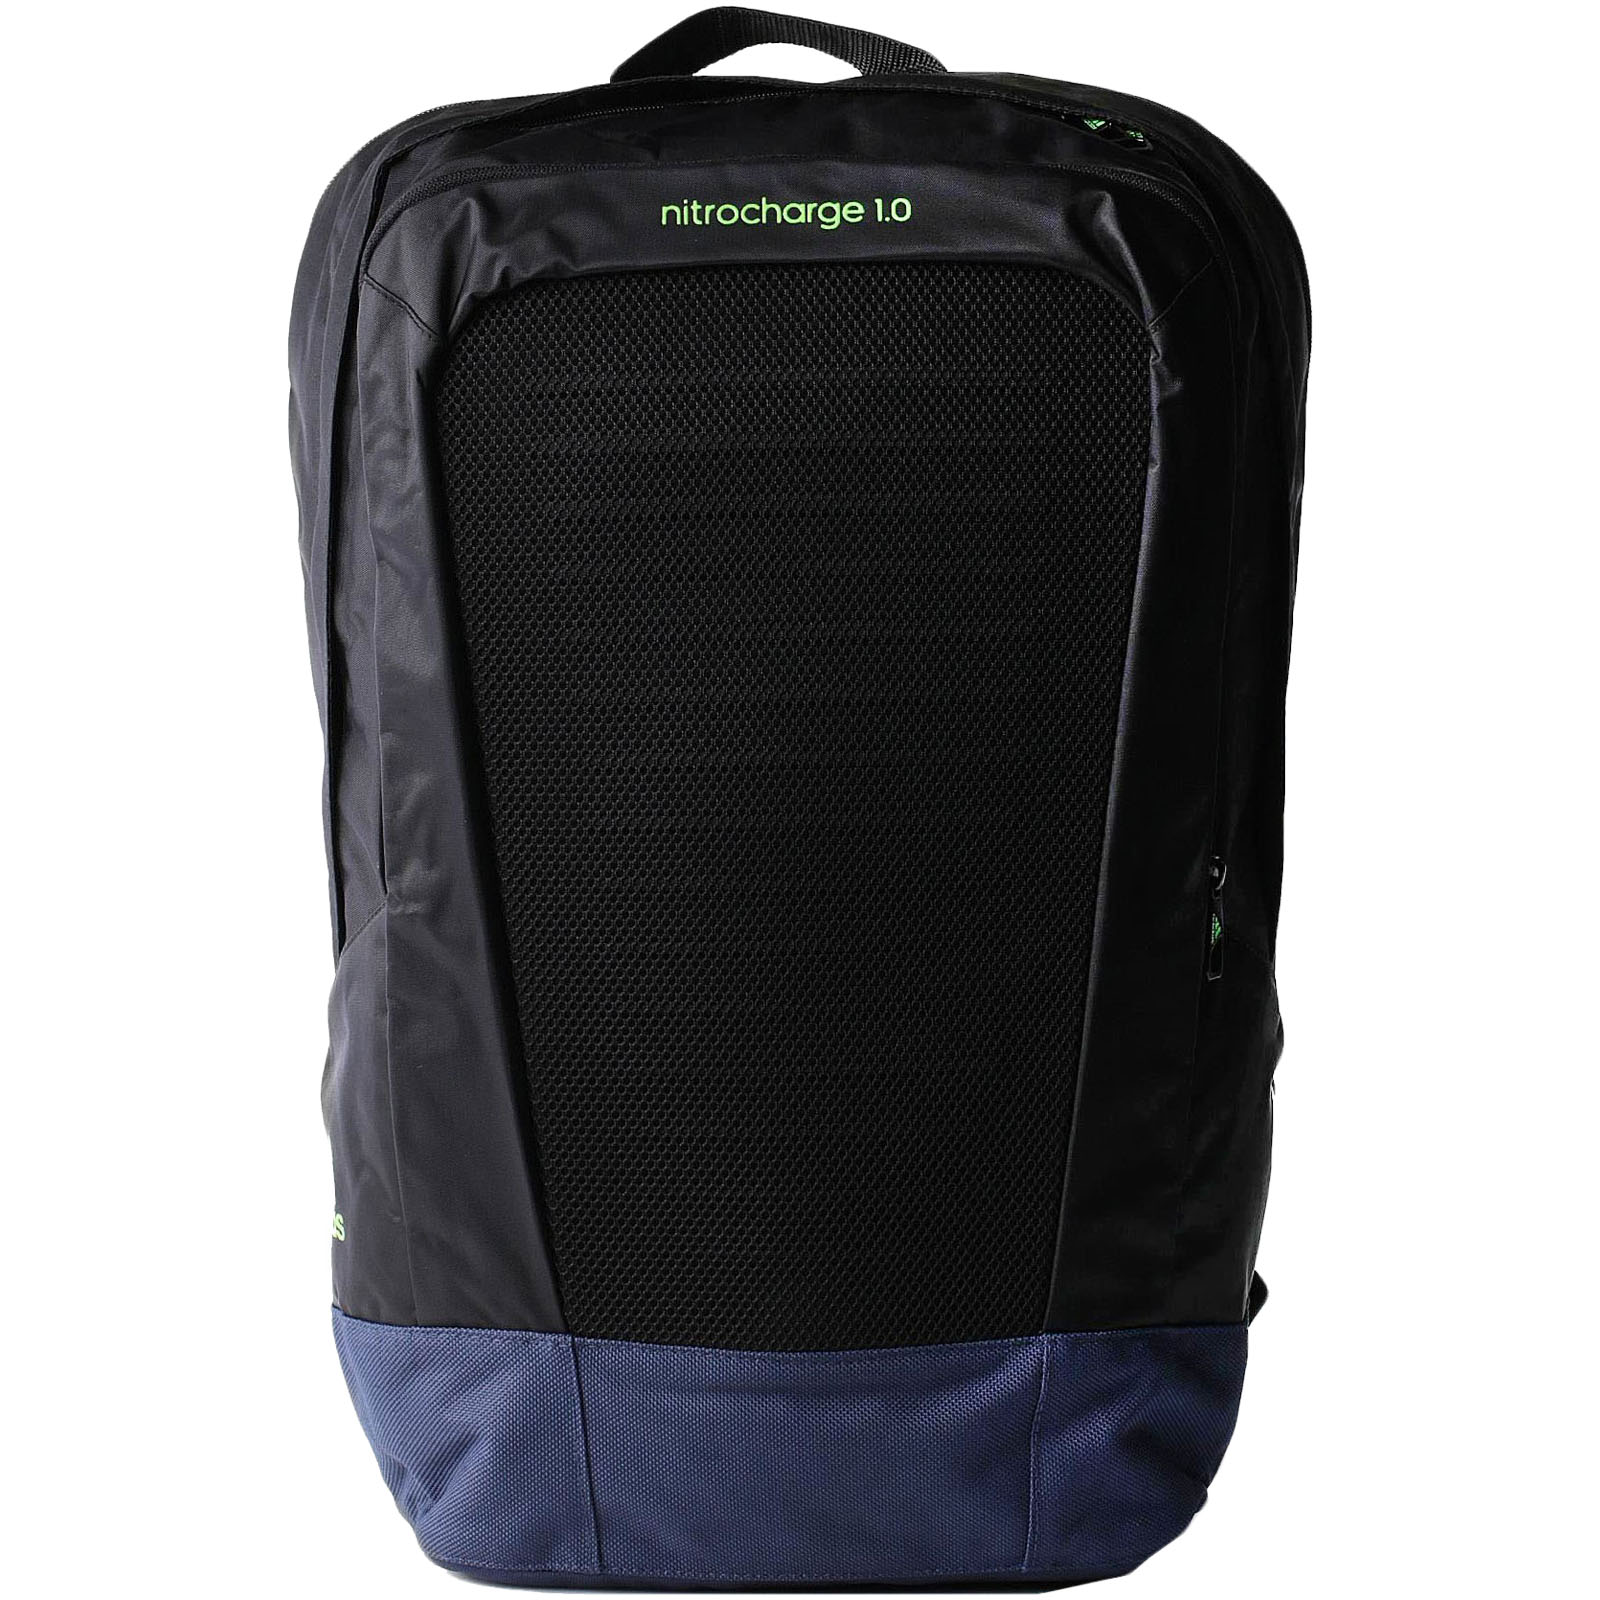 897e11bec6da Details about adidas Performance Mens Nitrocharge 1.0 Two Strap Backpack  Rucksack Bag - Black